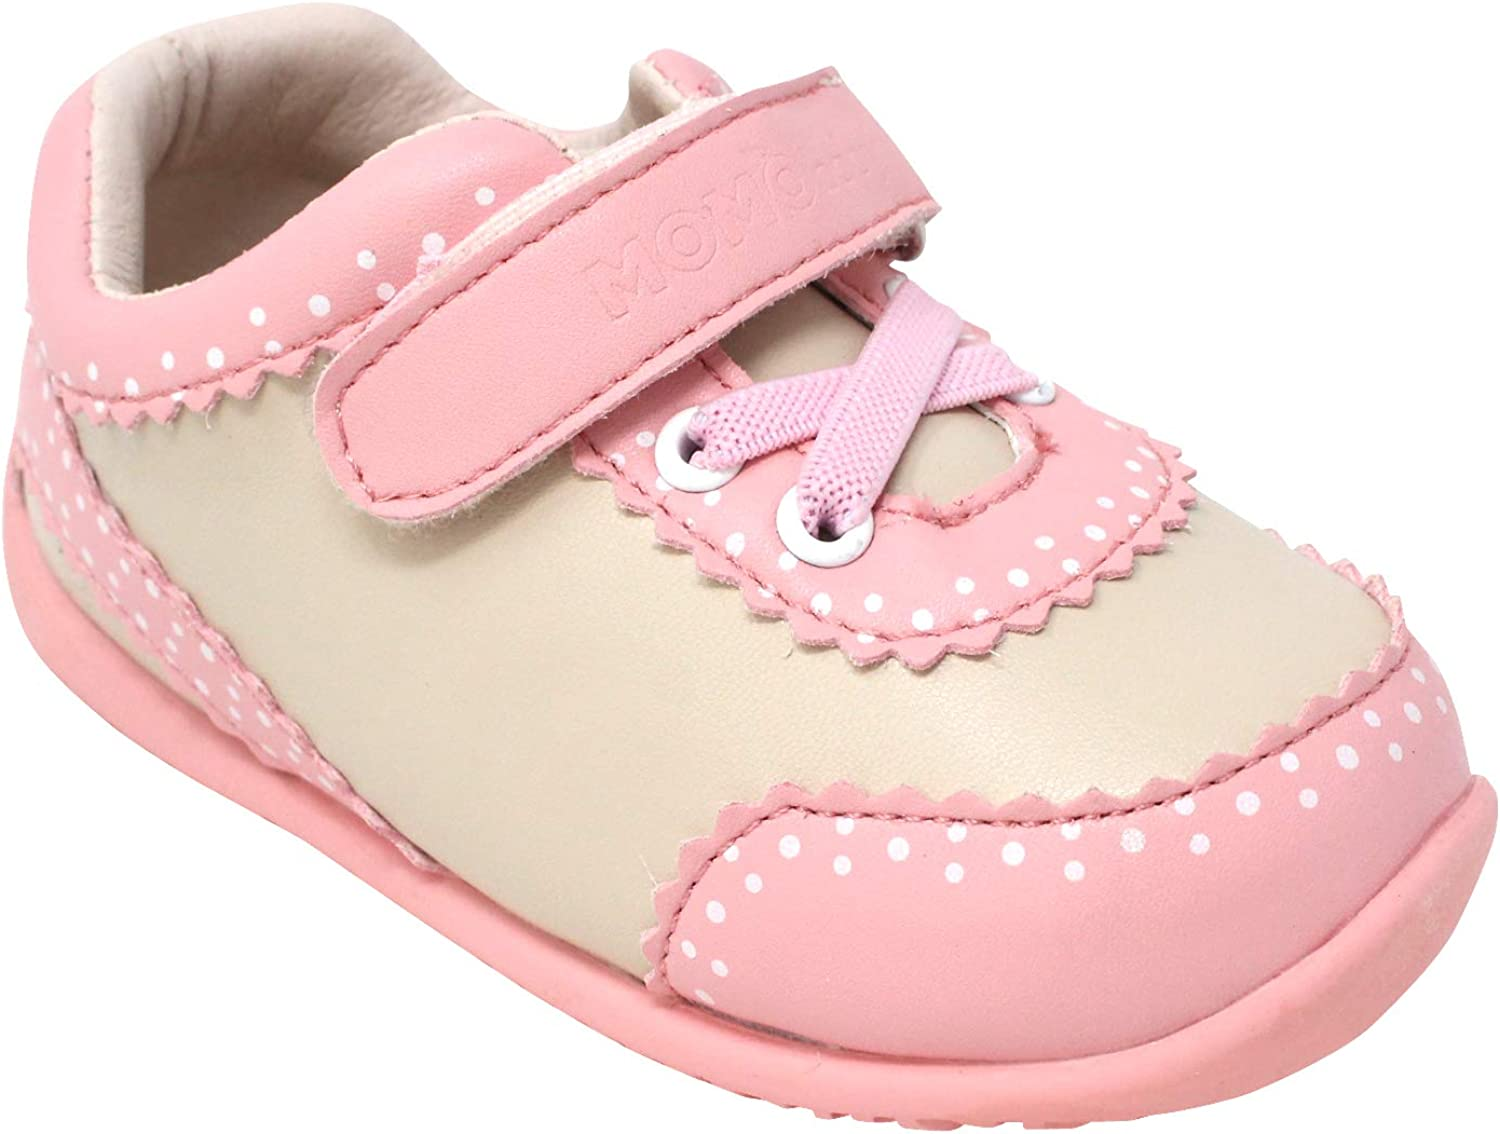 Momo Industry No. 1 Baby Girls Limited price sale First Walker Shoes Leather Toddler Sneaker Mia